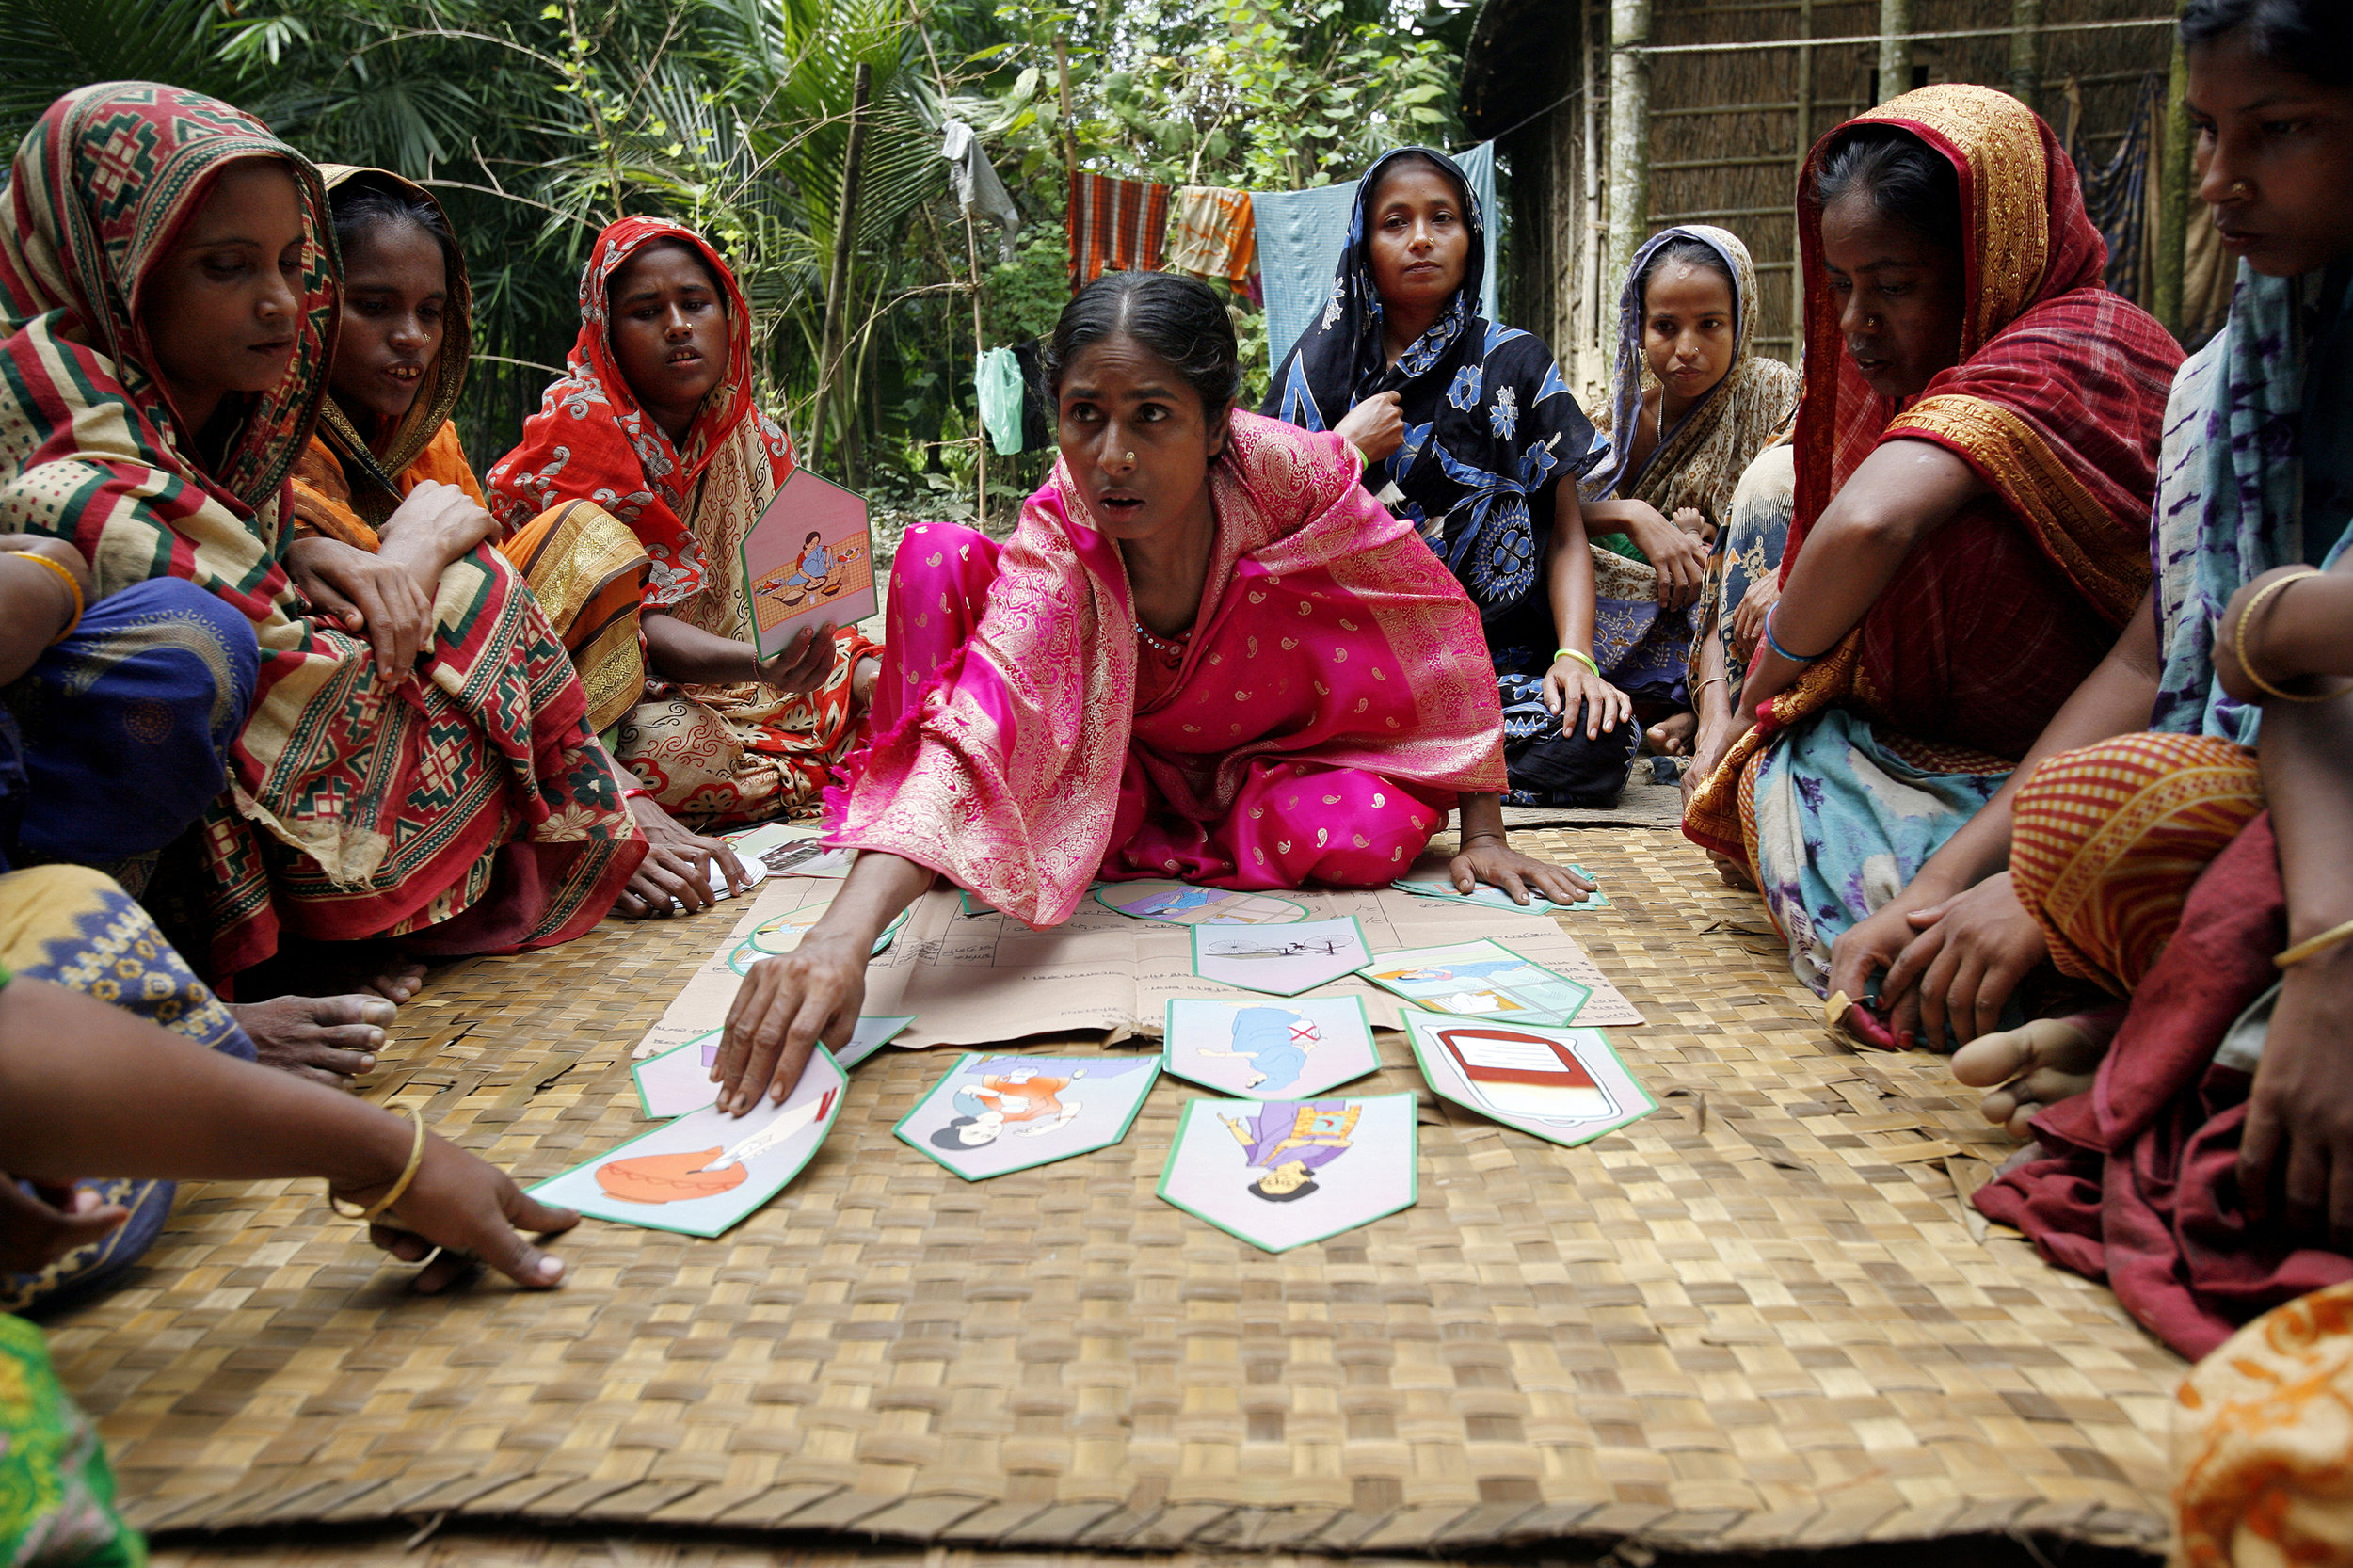 A community health group in action, using the Participatory Learning and Action approach championed by Women and Children First